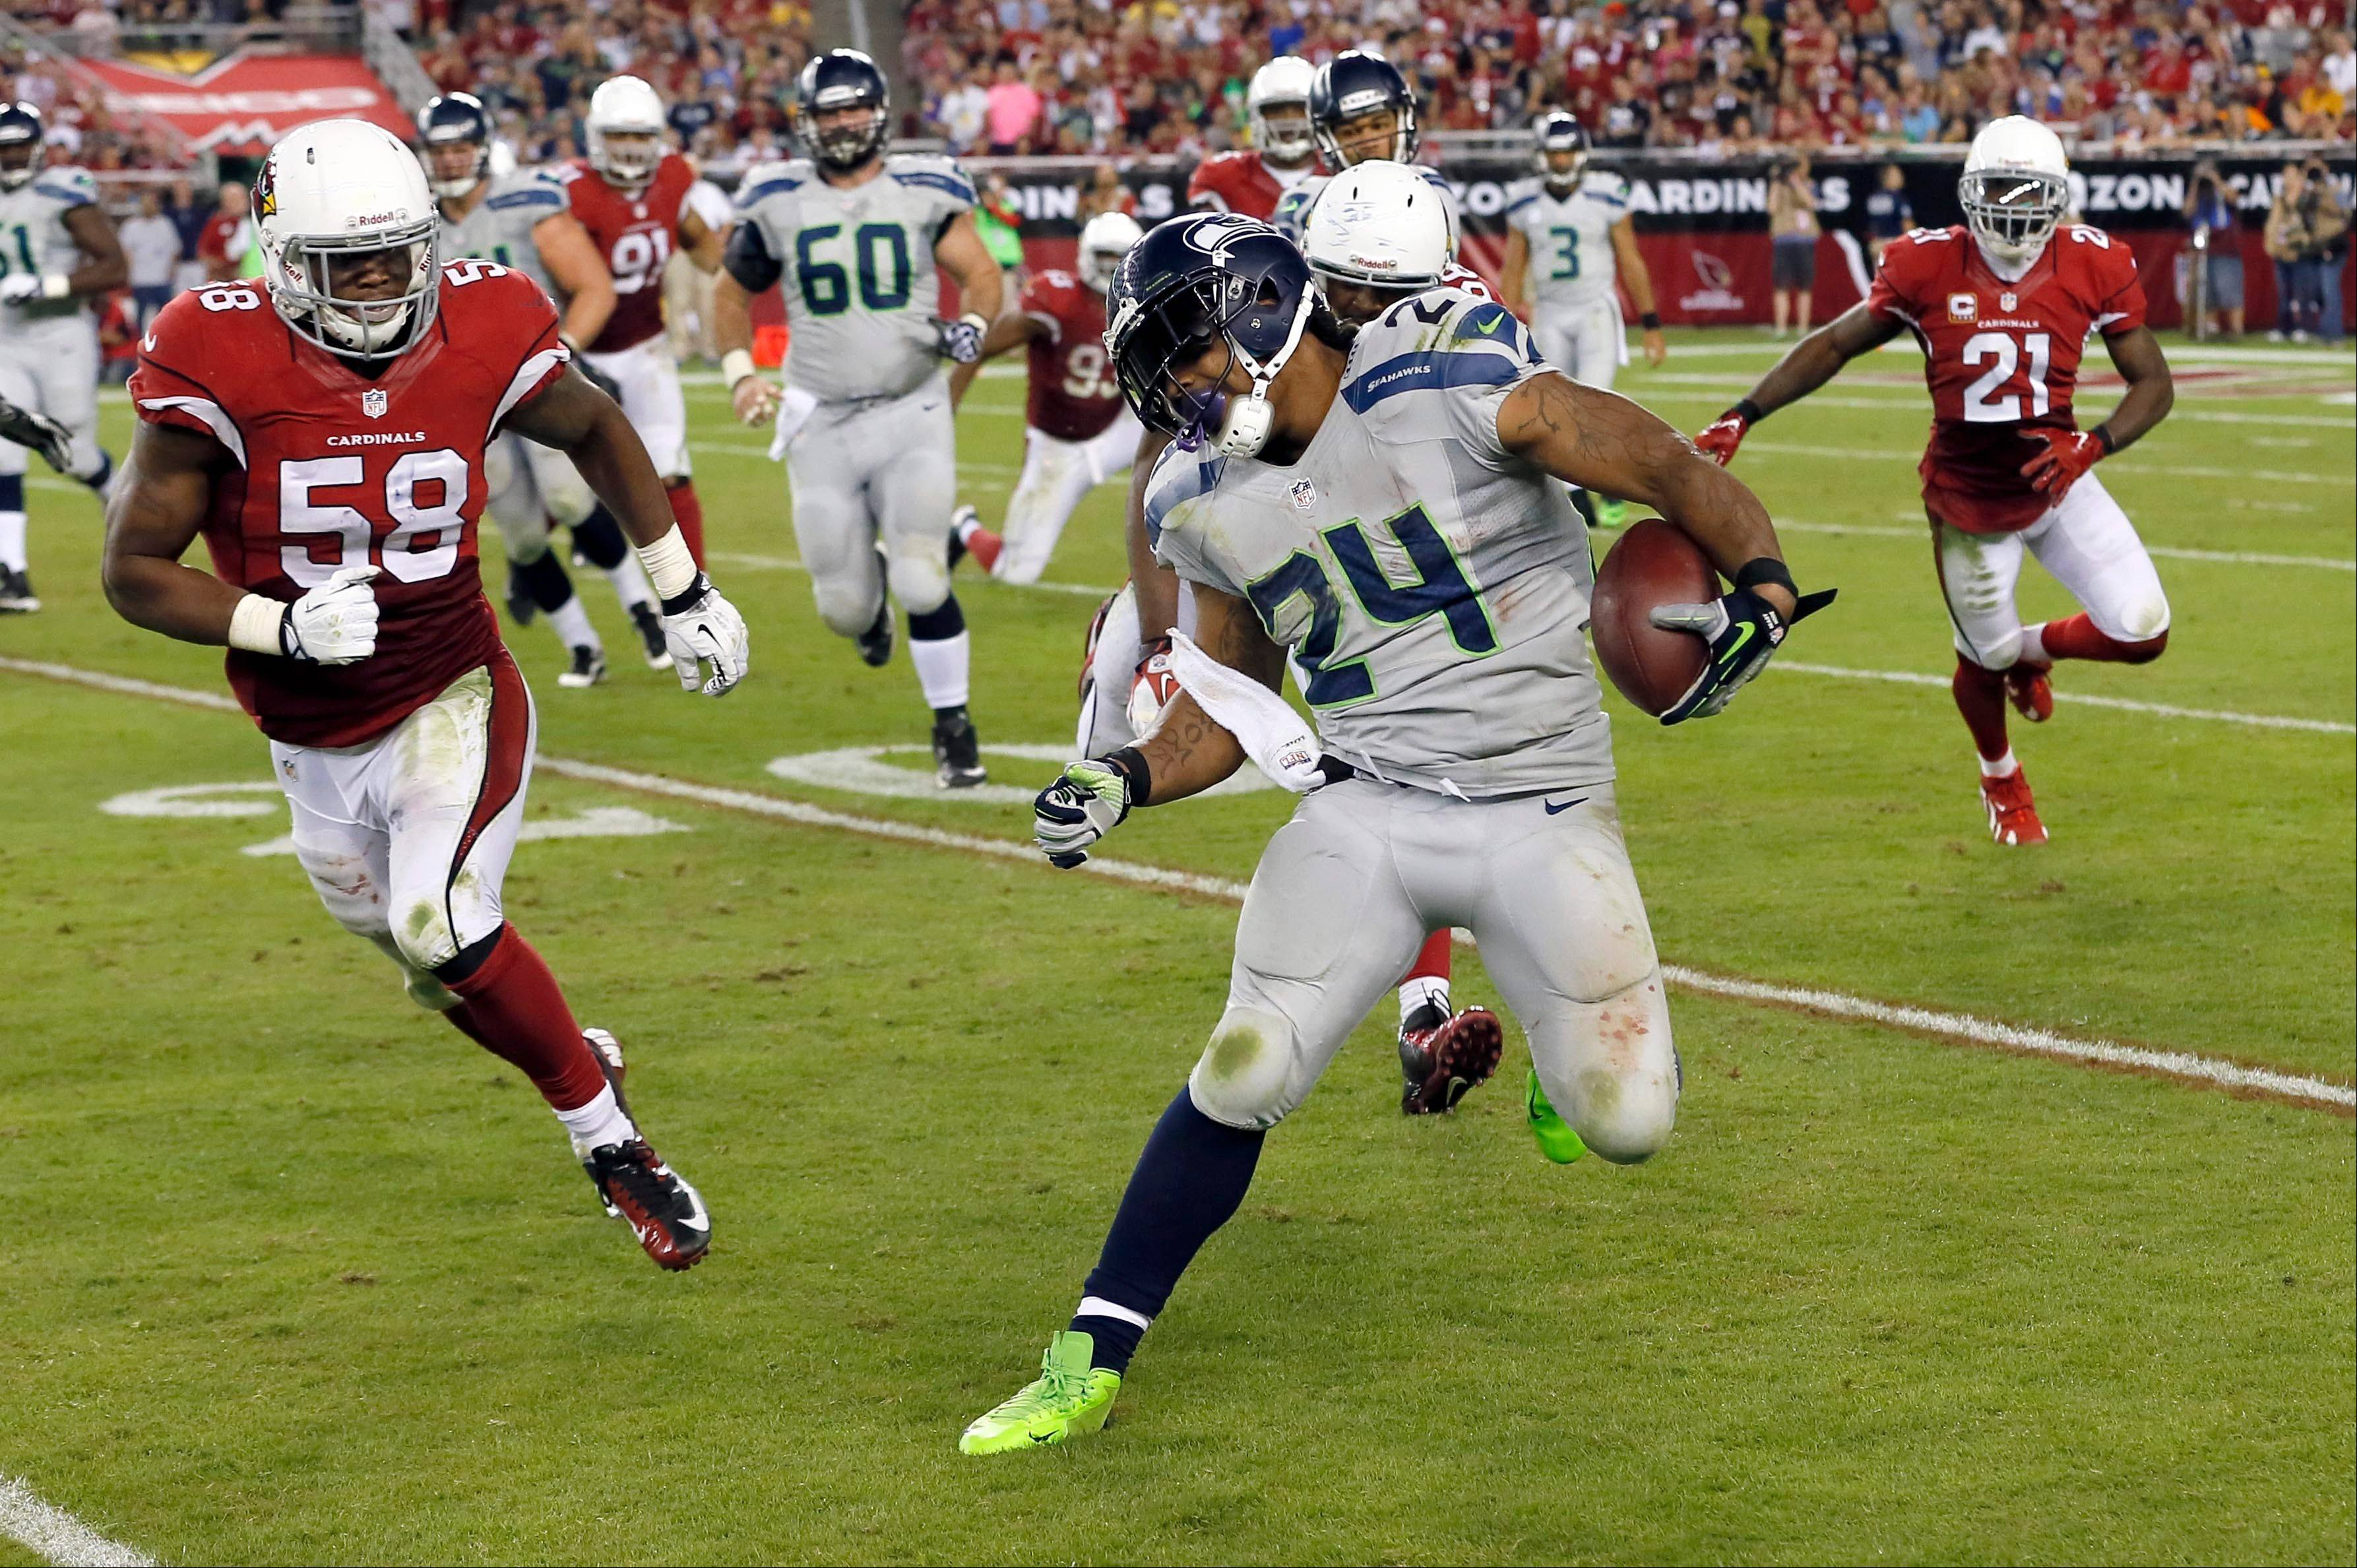 Seattle Seahawks running back Marshawn Lynch (24) tries to avoid Arizona Cardinals inside linebacker Daryl Washington (58) during the second half of an NFL football game, Thursday, Oct. 17, 2013, in Glendale, Ariz.